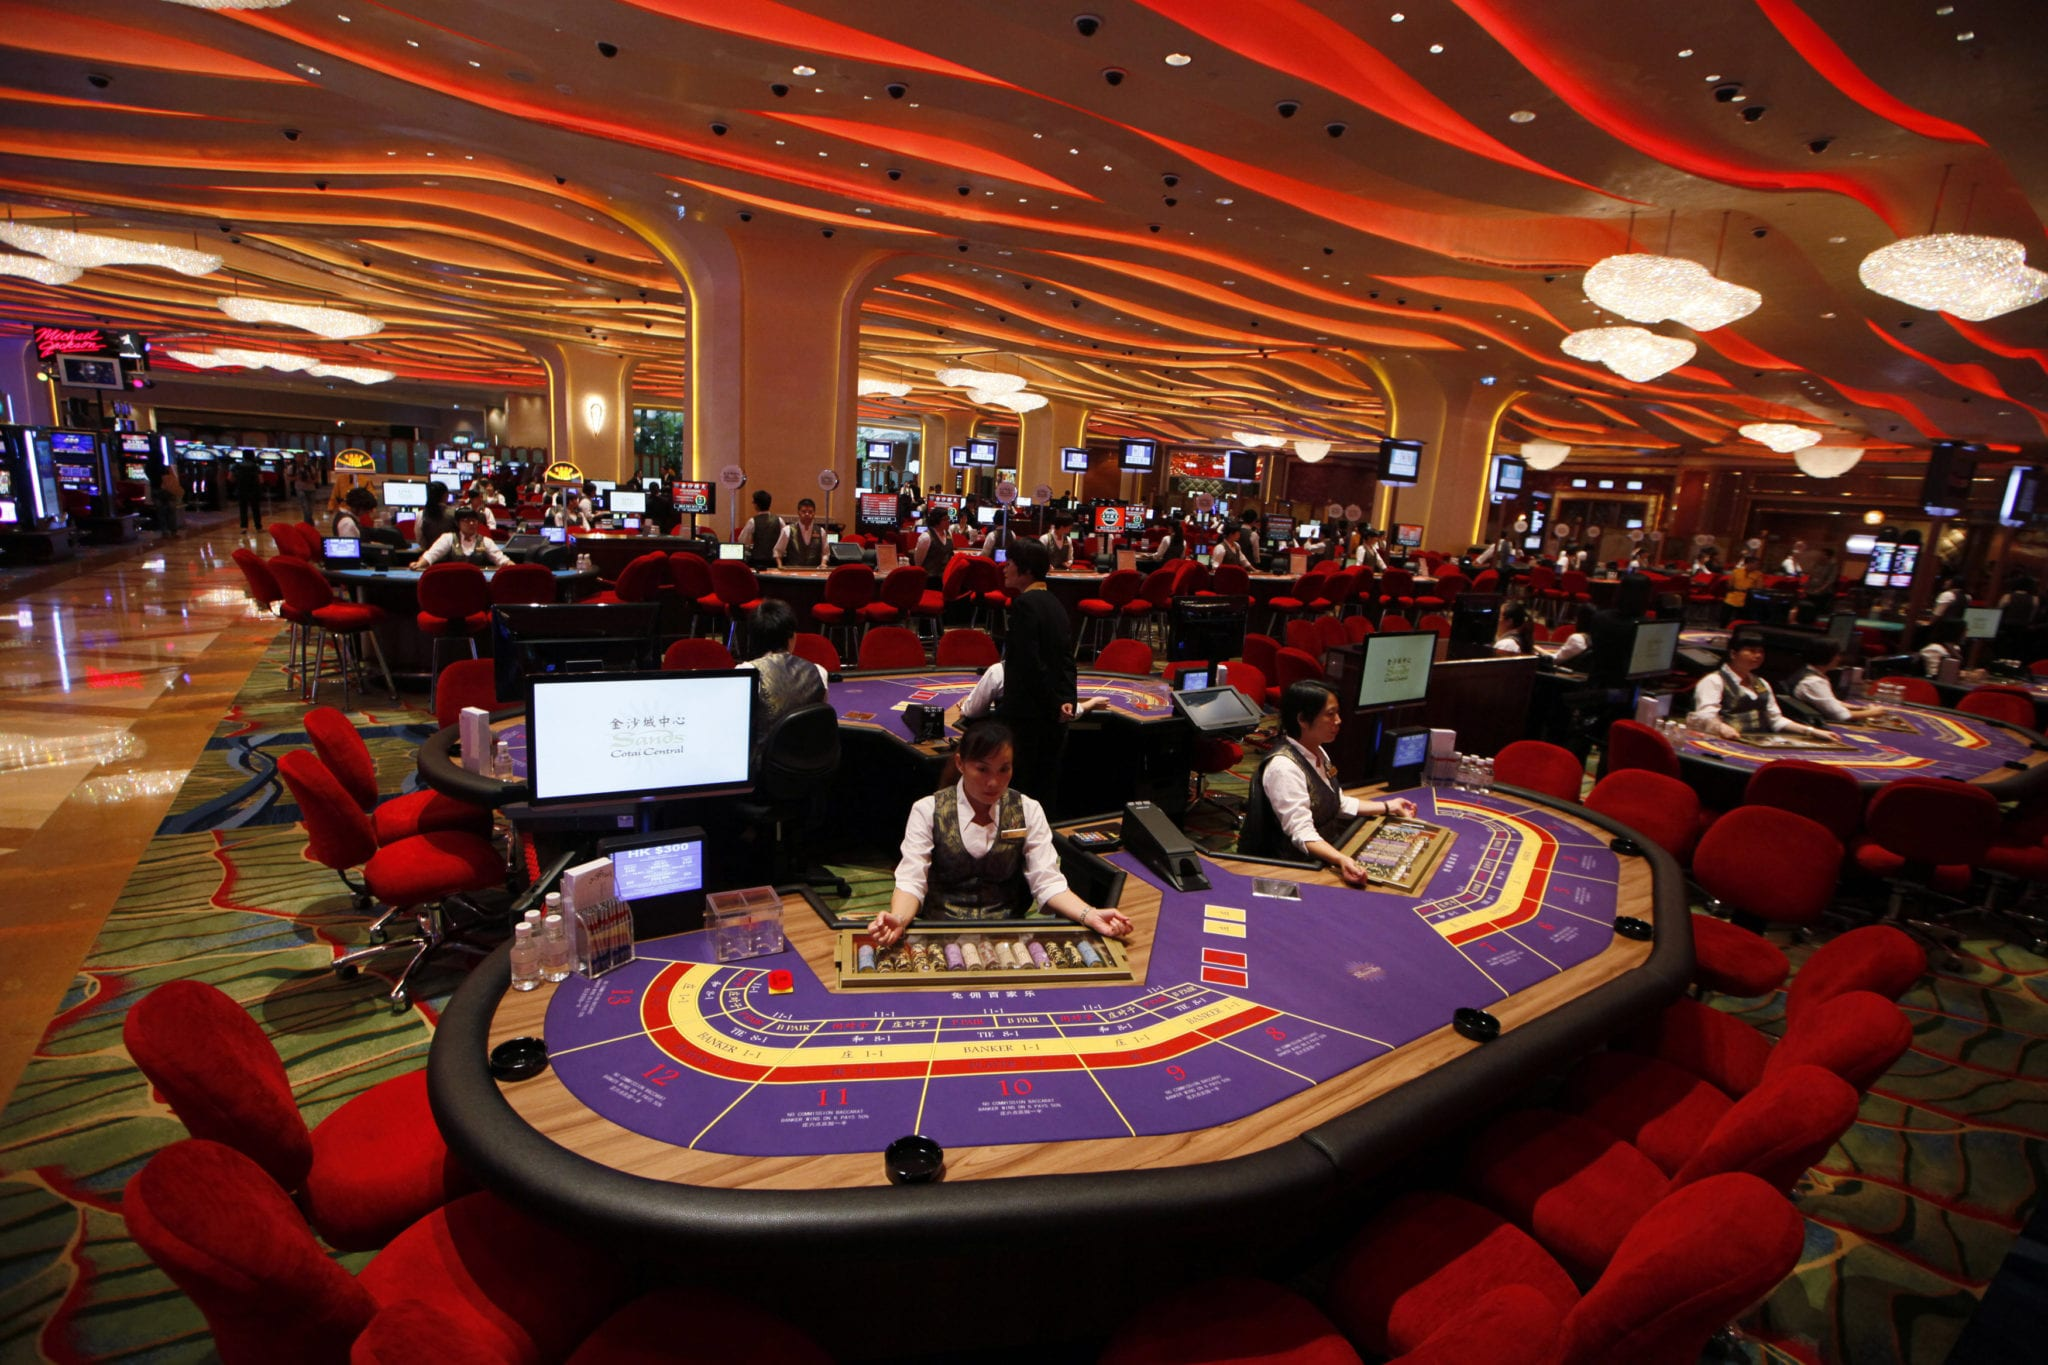 Macau Casino Revenues Hit $2.4 Billion, Making November The Region's Best Month